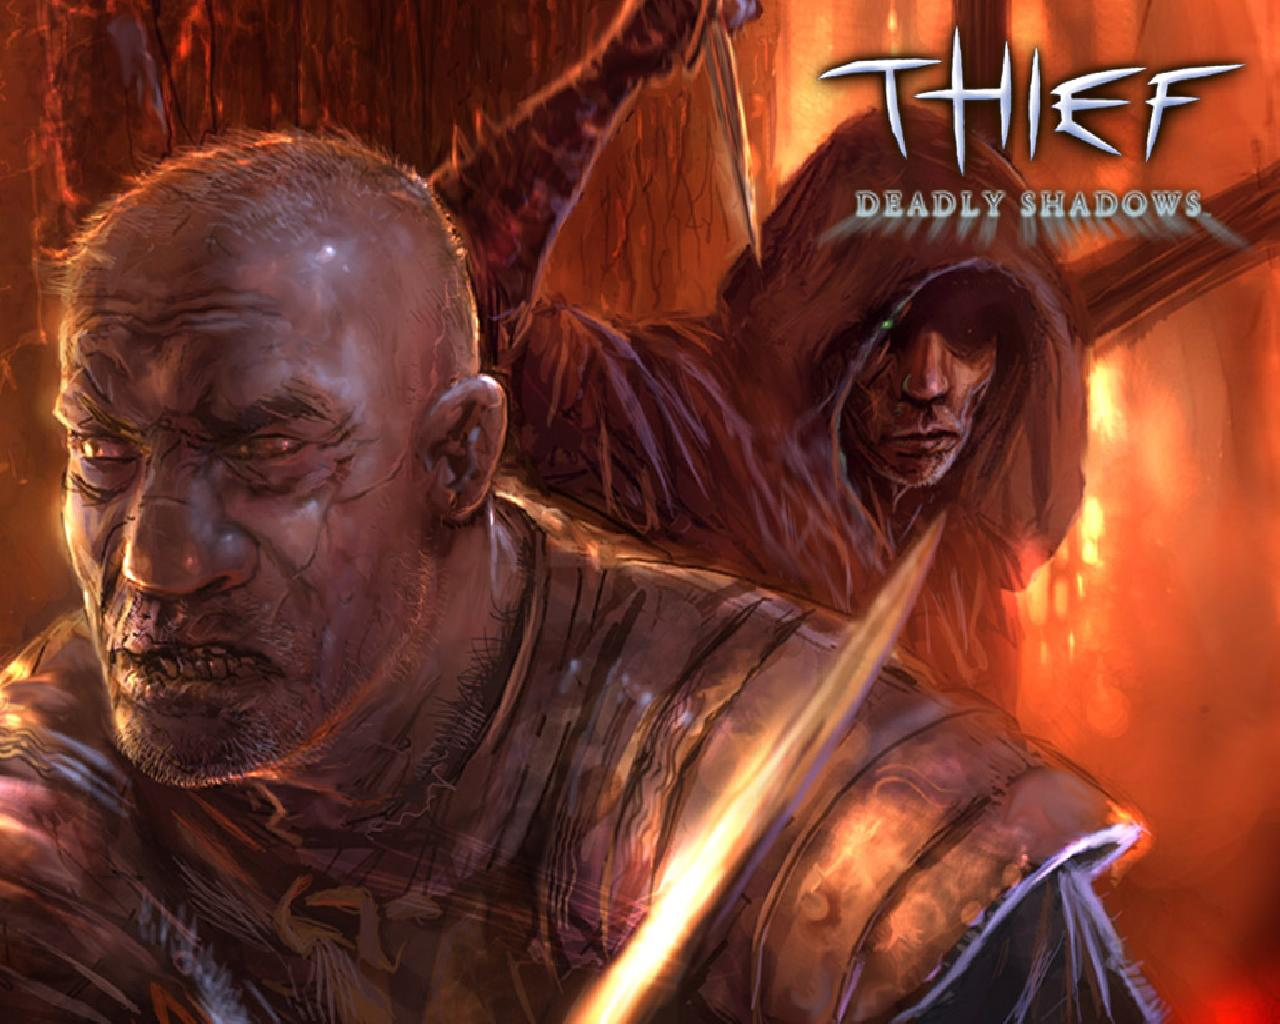 Thief_Deadly_Shadows_07_1280x1024.jpg